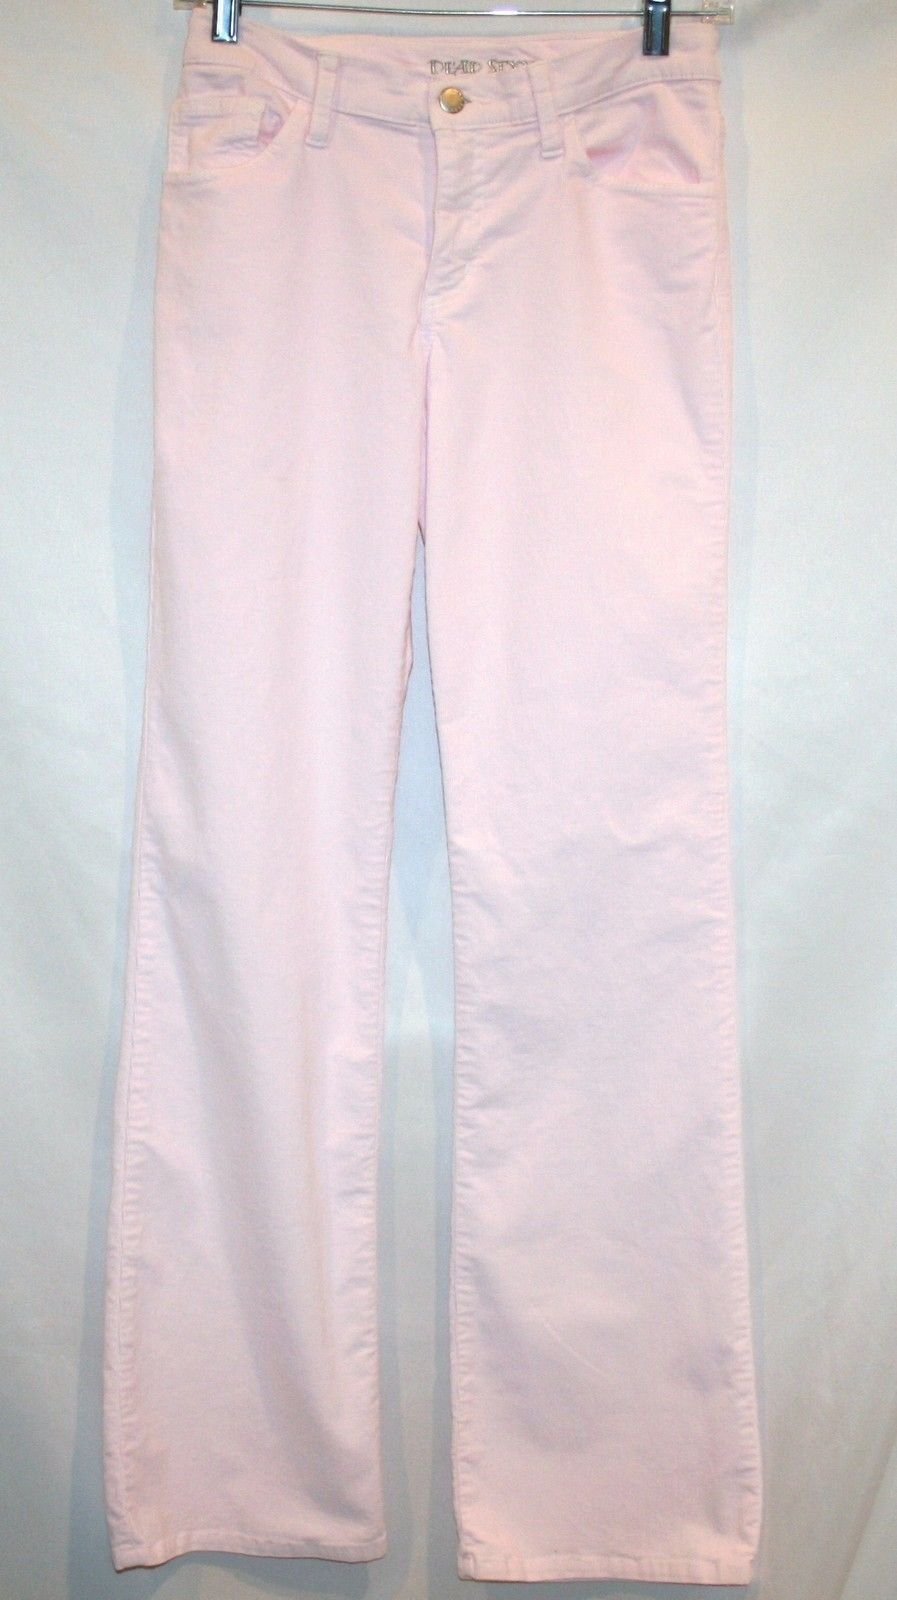 DEAD SEXY Stretch Corduroy Light Ice Pink 5 Pocket Boot Cut Pant Size 25